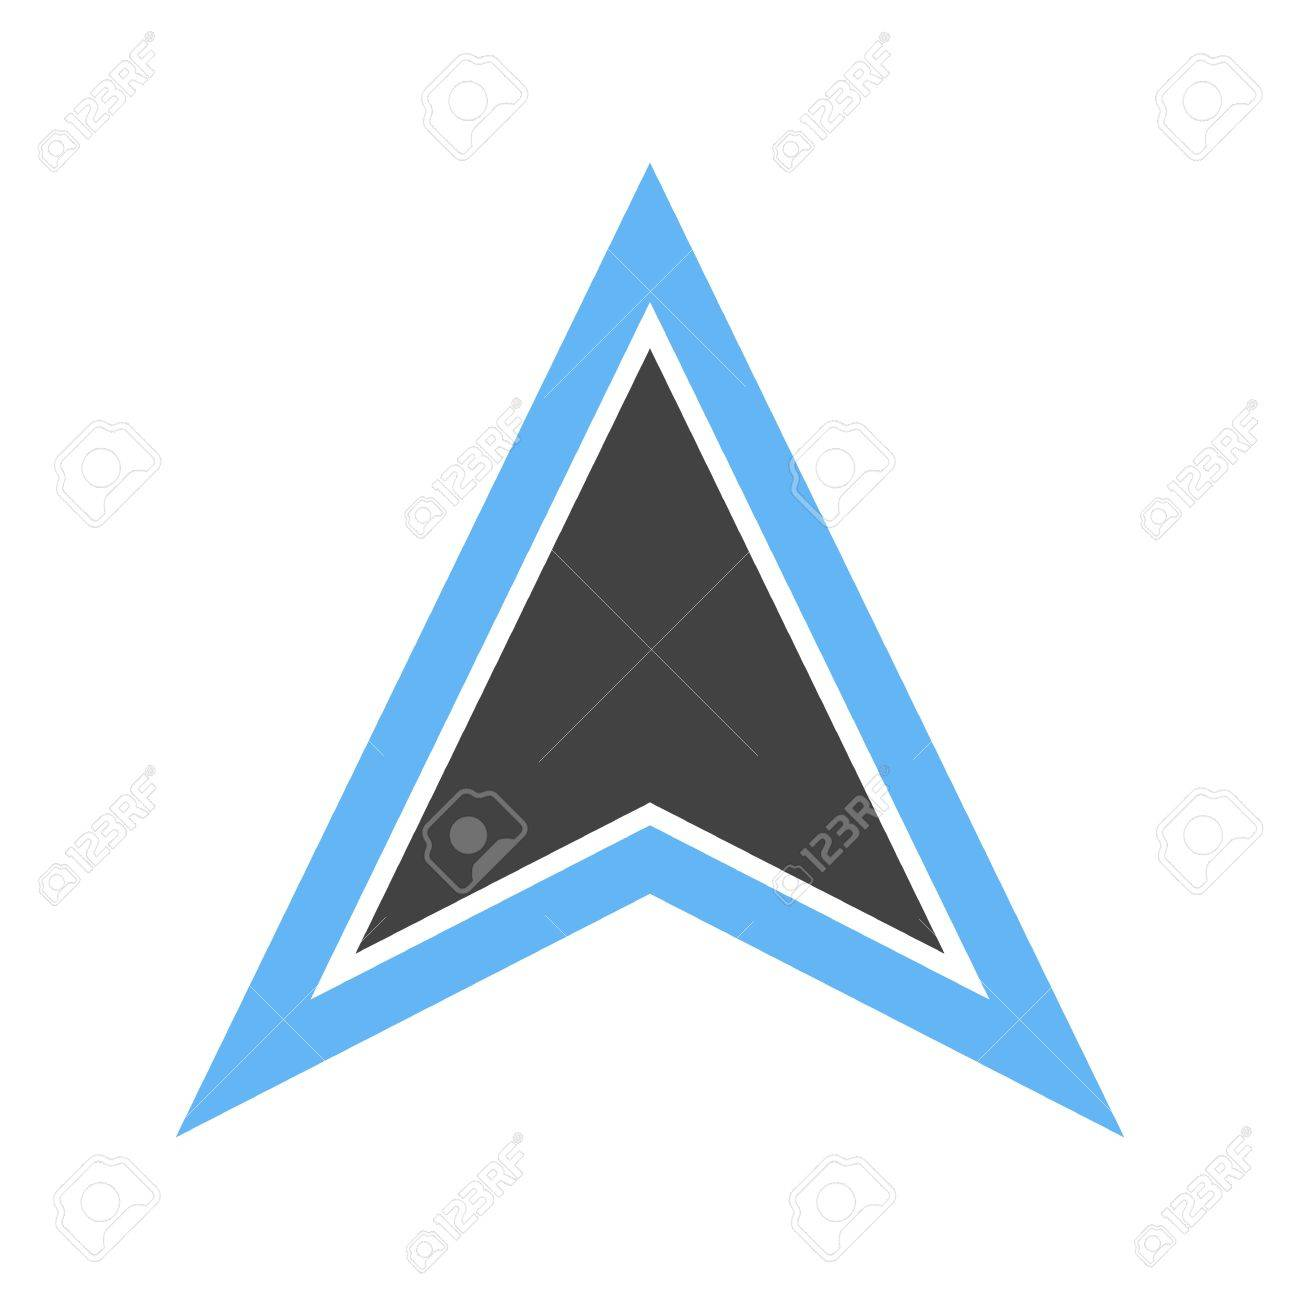 Pointer, arrow, map icon vector image Can also be used for maps